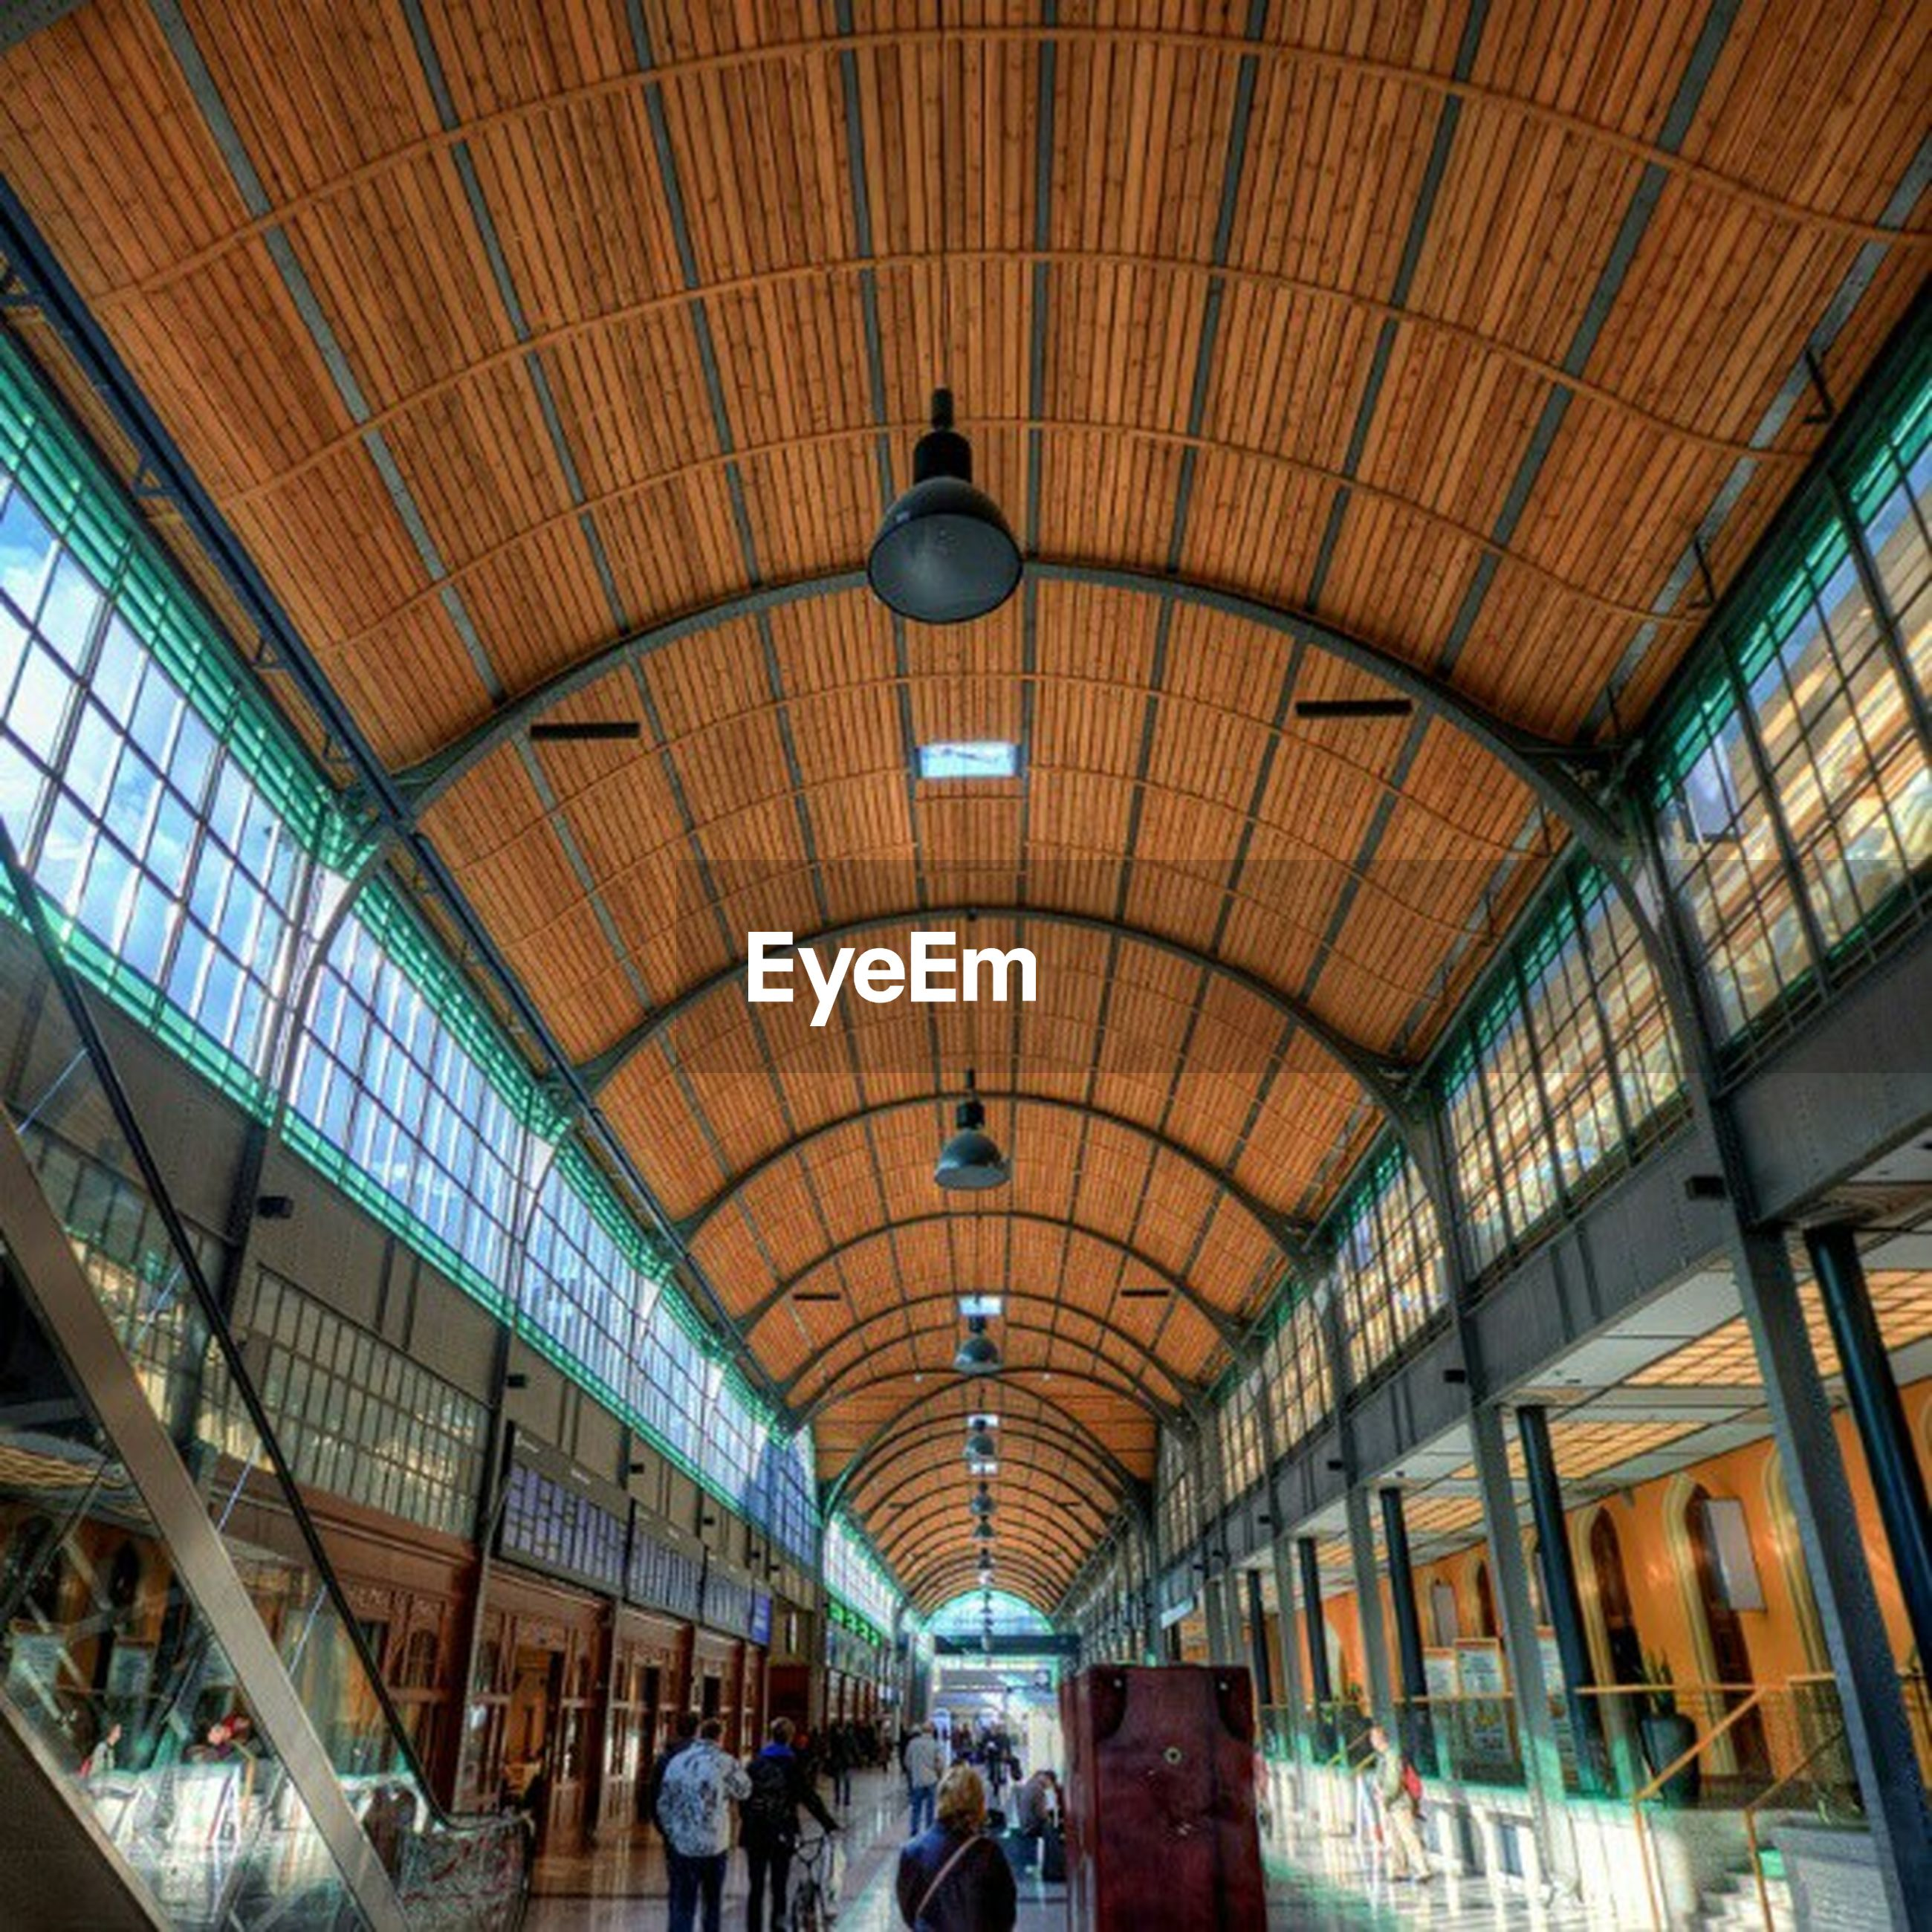 indoors, ceiling, architecture, built structure, lighting equipment, illuminated, interior, low angle view, hanging, arch, chandelier, corridor, diminishing perspective, in a row, window, incidental people, shopping mall, electric lamp, architectural feature, electric light